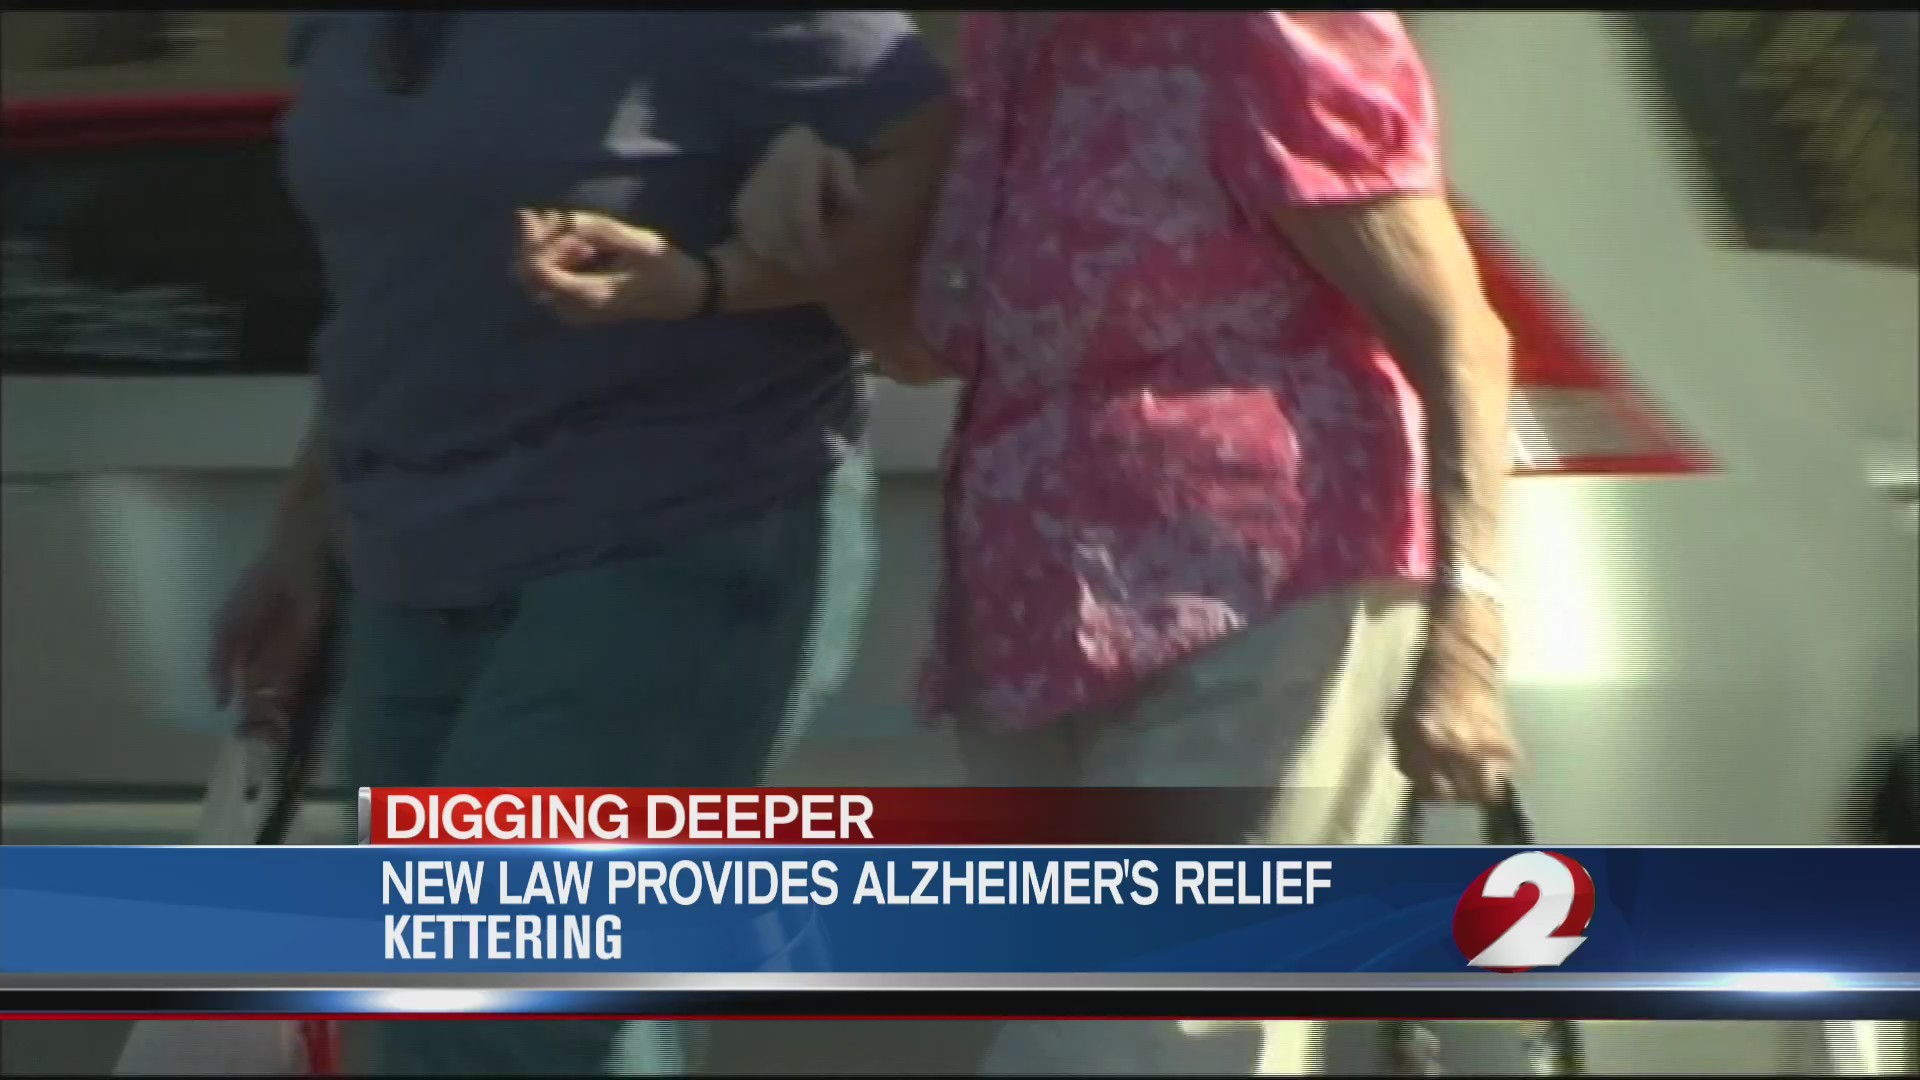 New law provides Alzheimer's relief